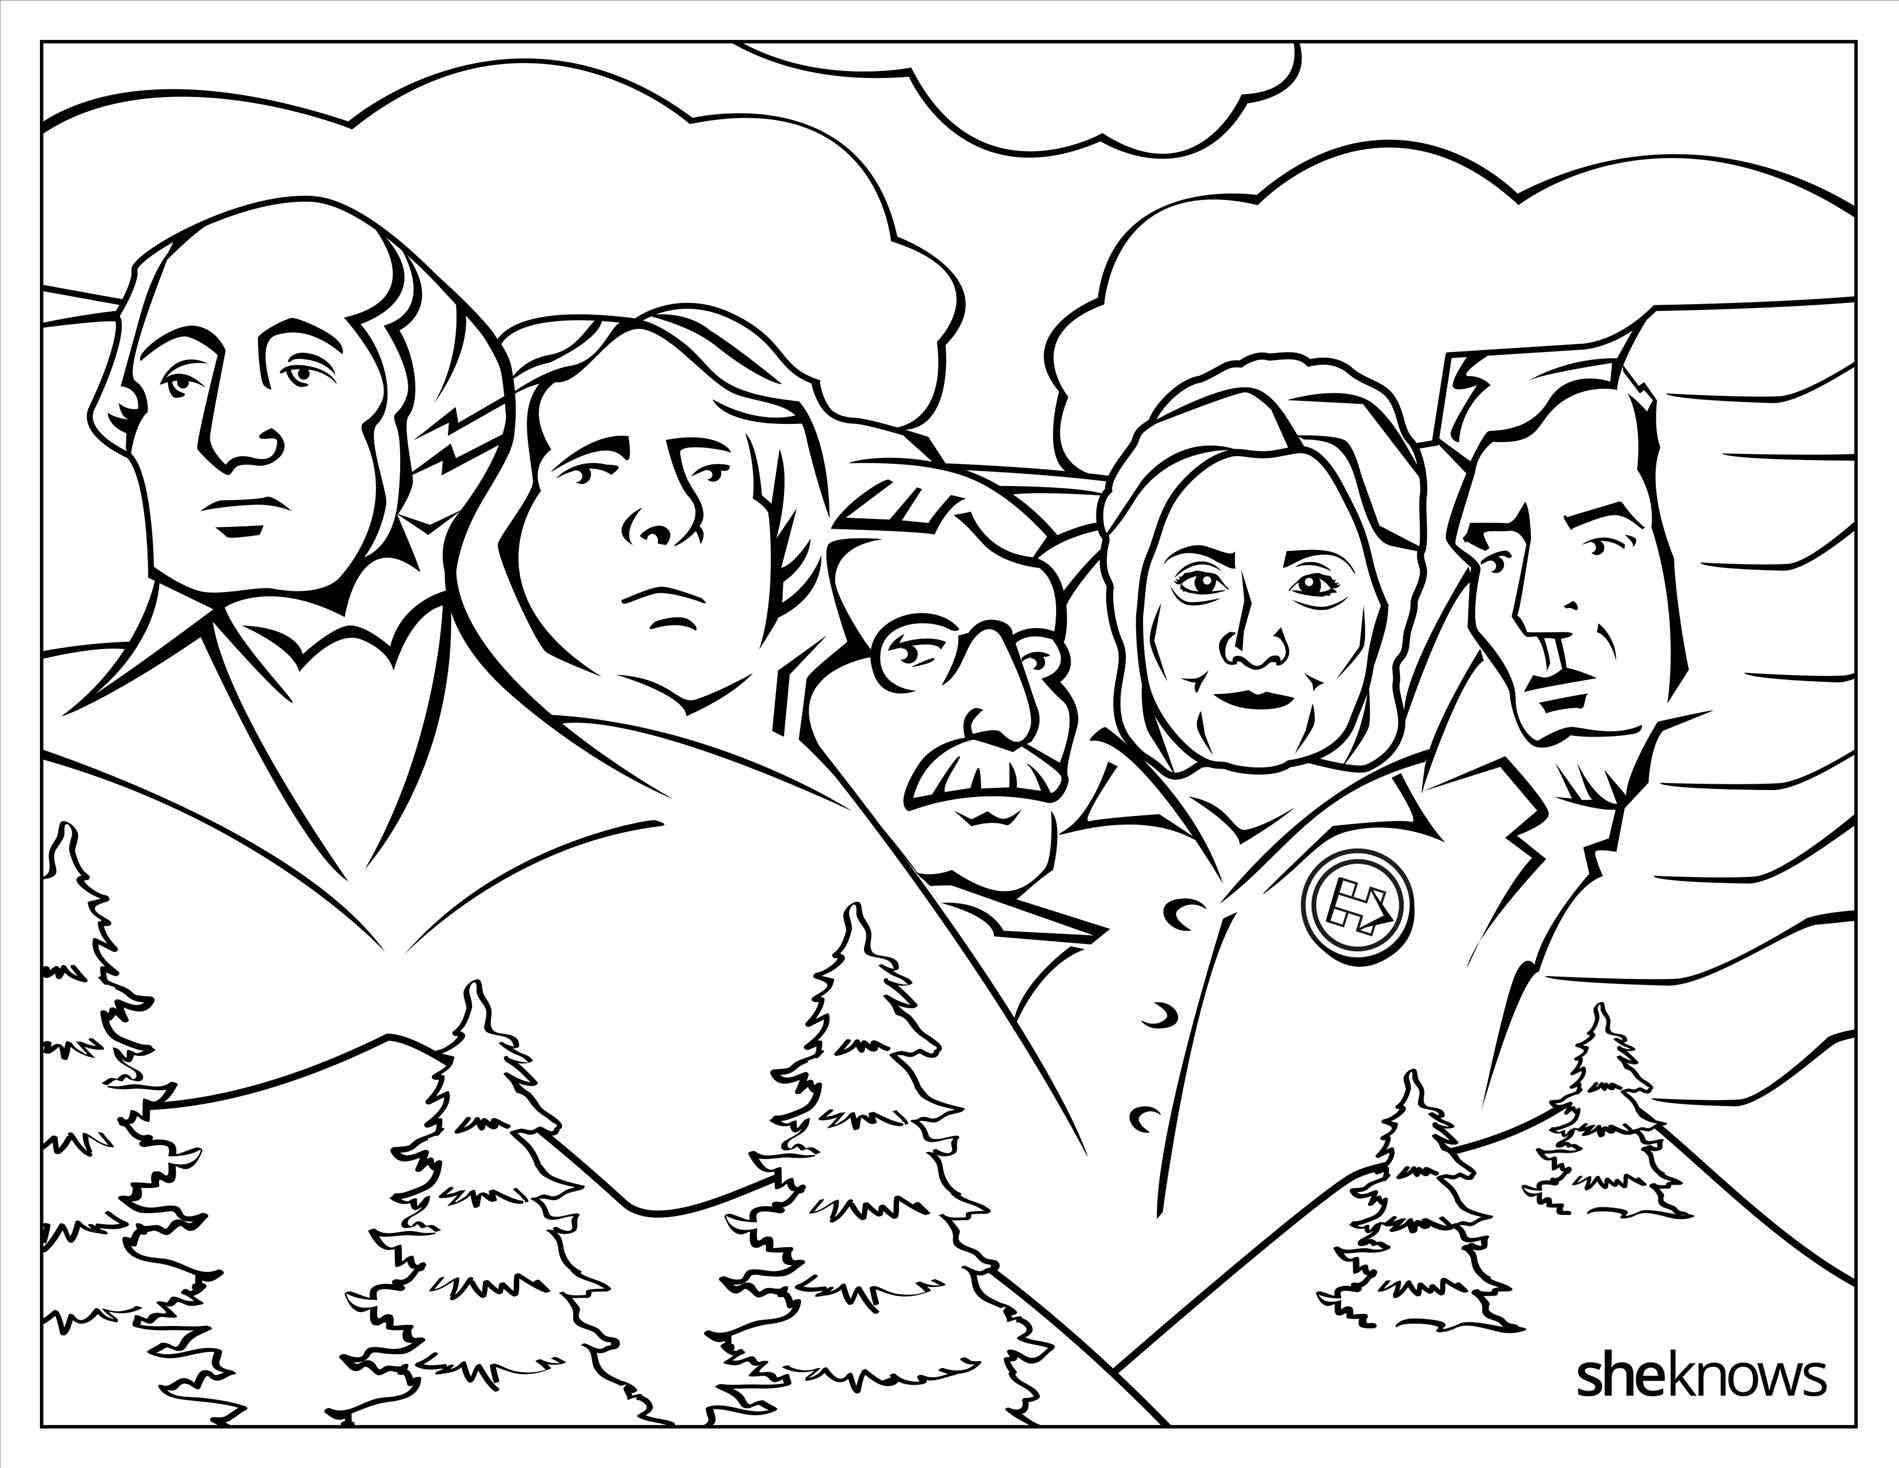 Hillary Coloring Pages Download Of Funny Hillary Clinton Meme Coloring Page for Adults Hilarious Gallery